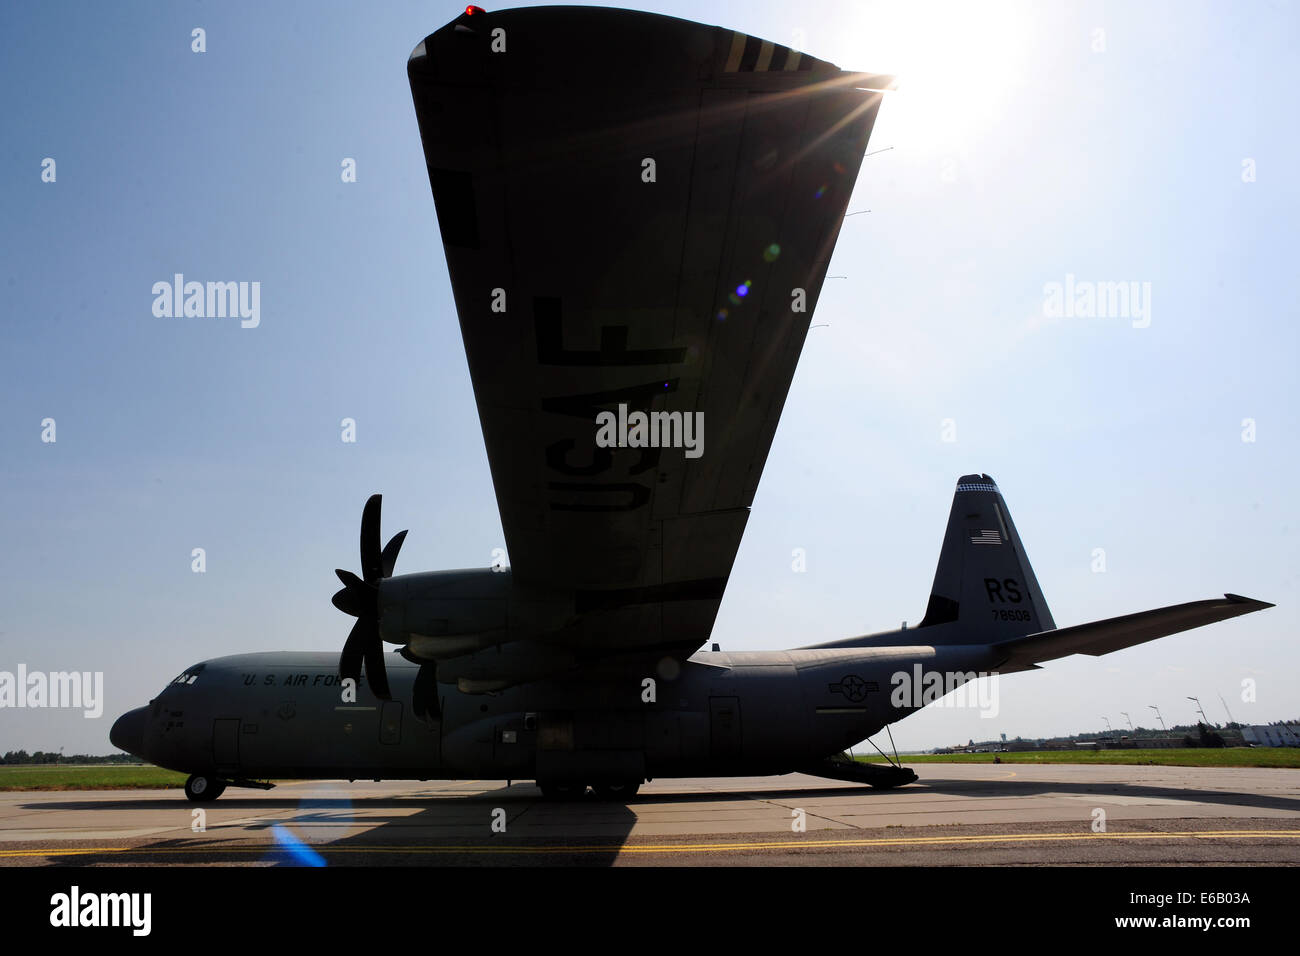 A U.S. Air Force C-130J Super Hercules aircraft prepares for loading and takeoff at Siauliai Air Base, Lithuania, Stock Photo